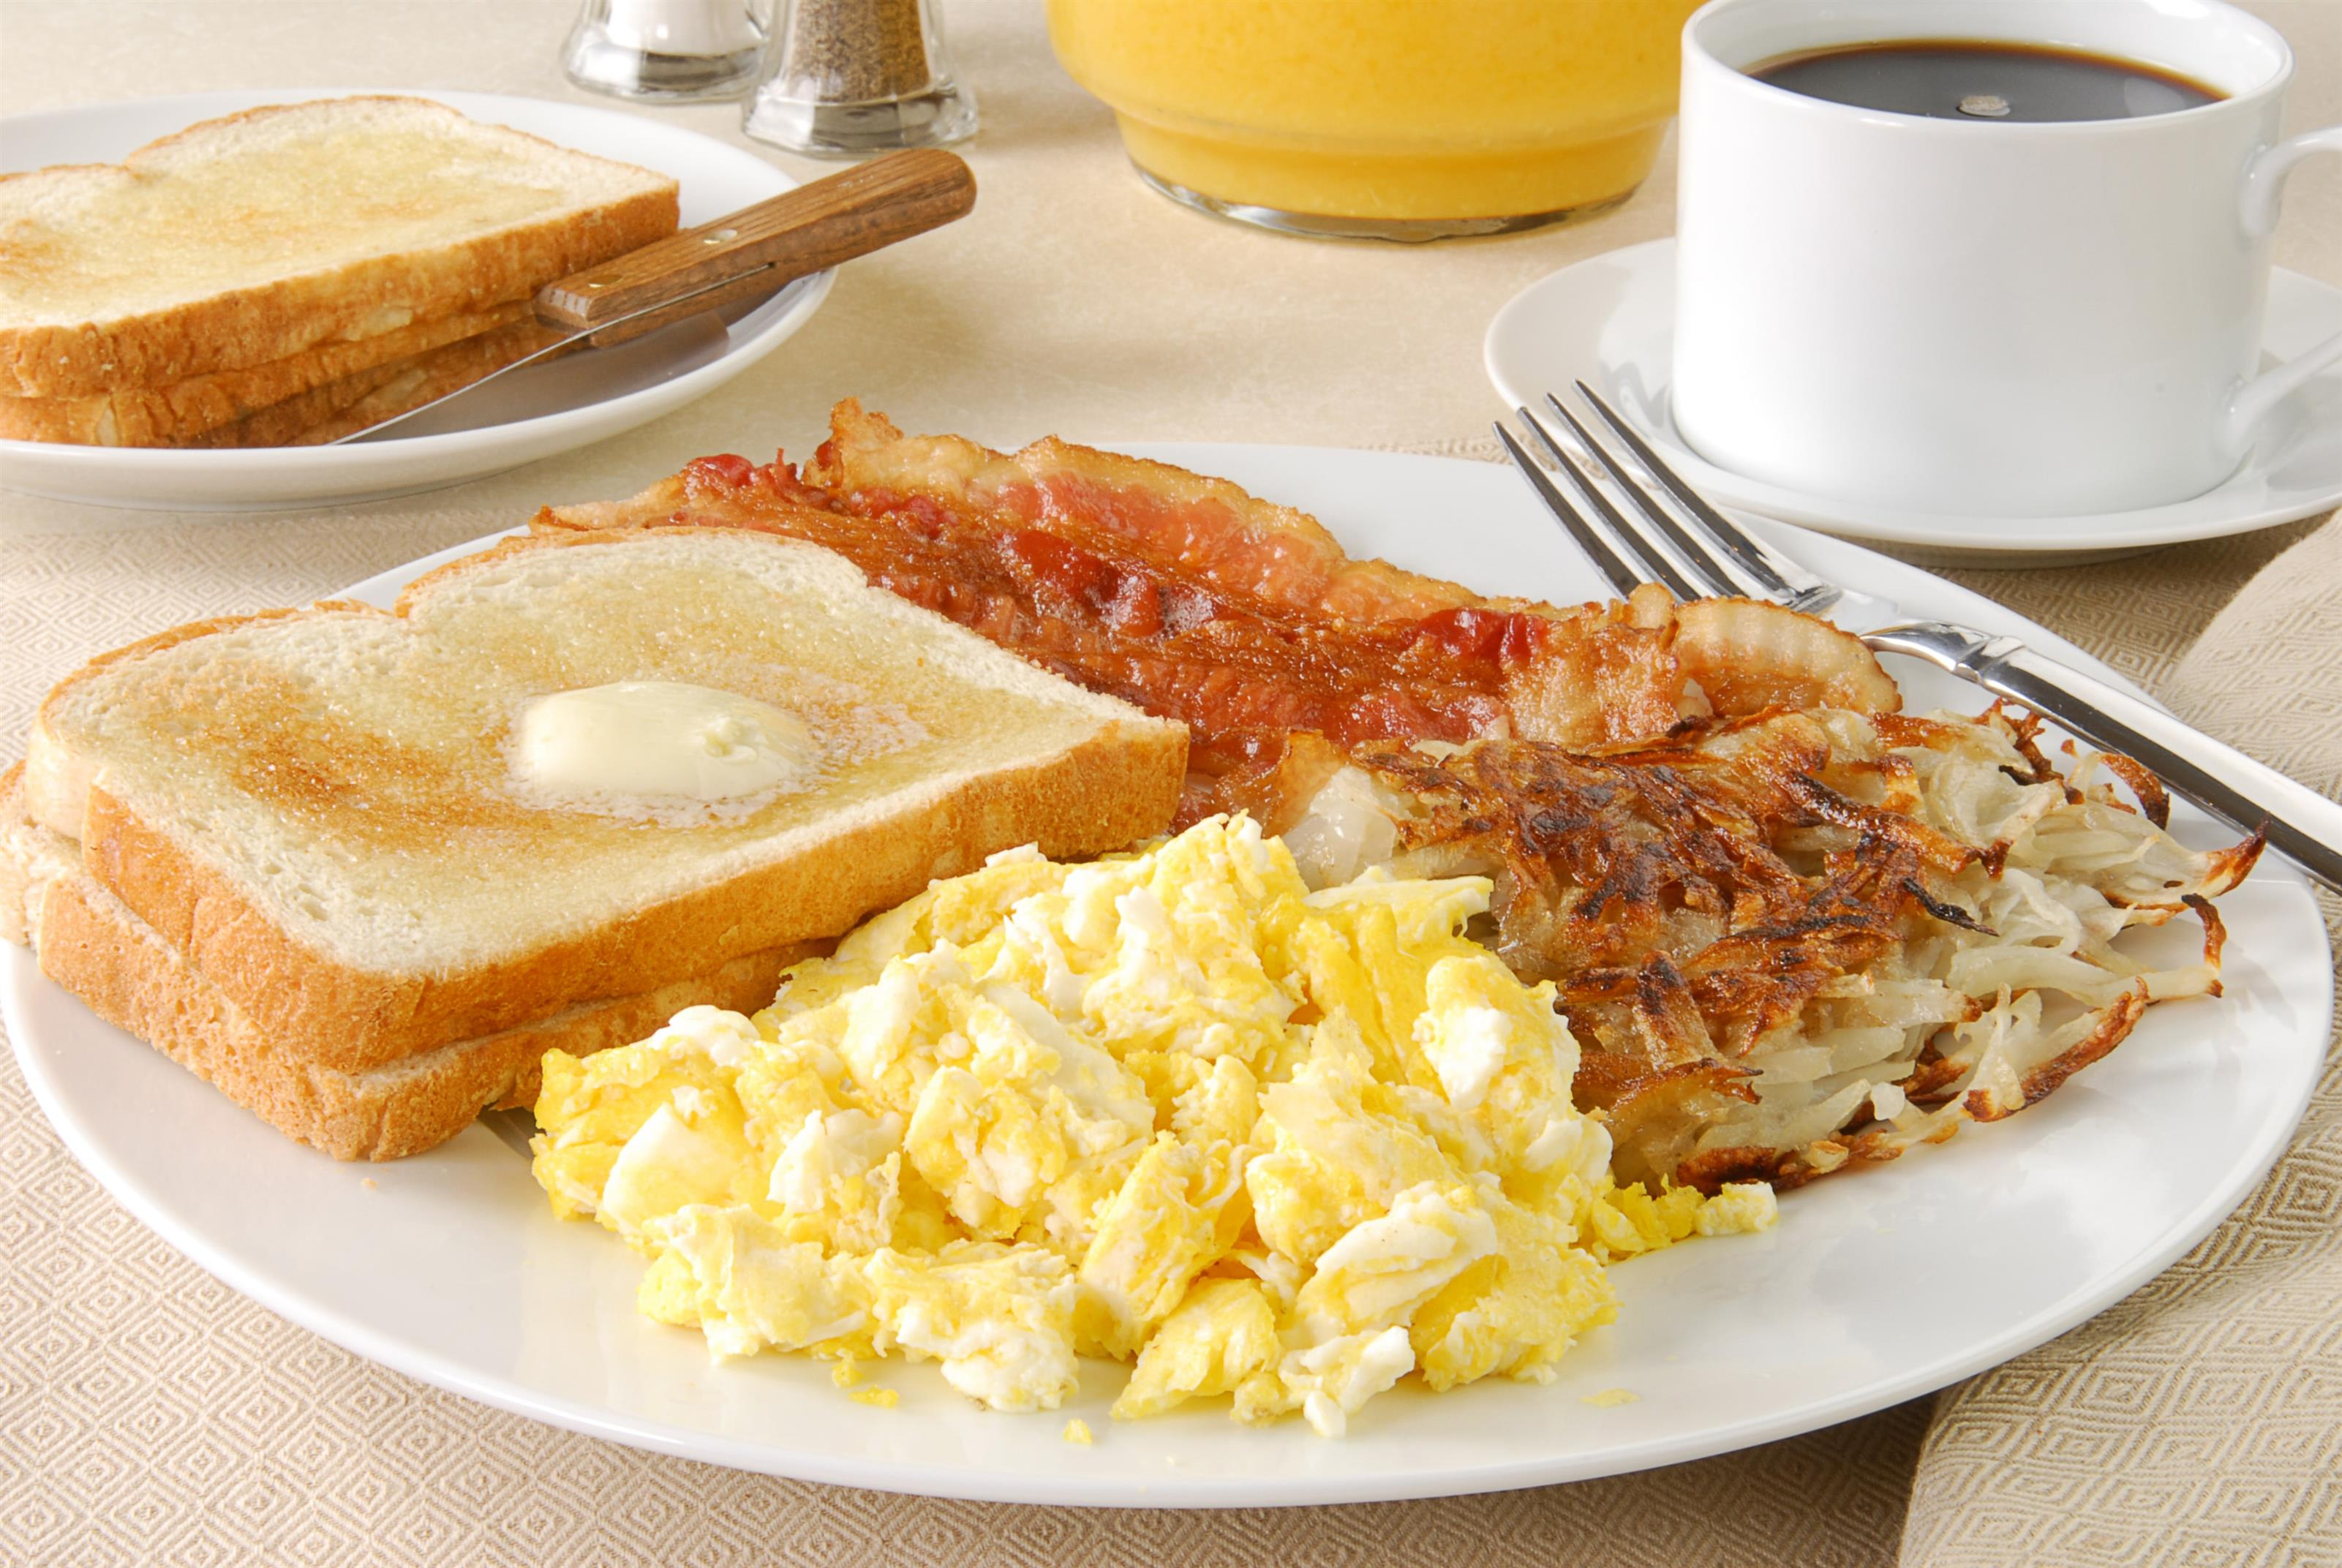 Plate of scrambled eggs, toast, hash browns, bacon in front of coffee cup and orange juice